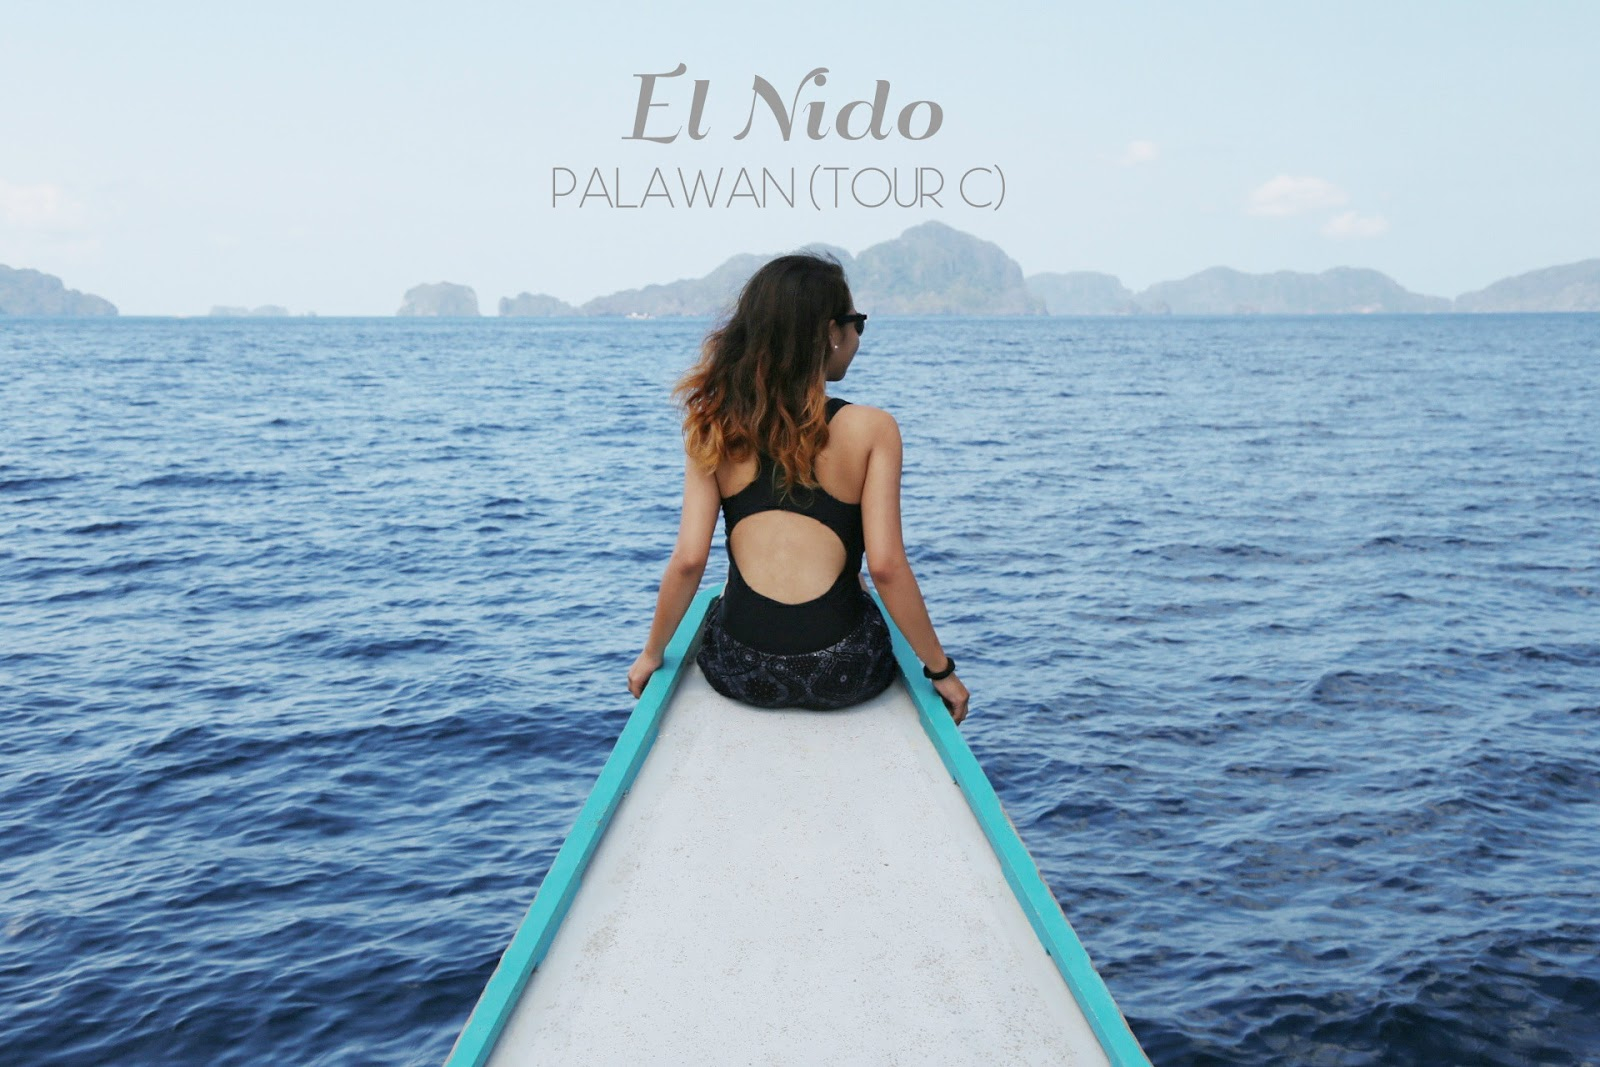 el nido dating Discover how easy it is to find women seeking dates in el nido with mingle2's free el nido dating service if you're tired of trying to meet el nido women at bars and clubs, it's time to.